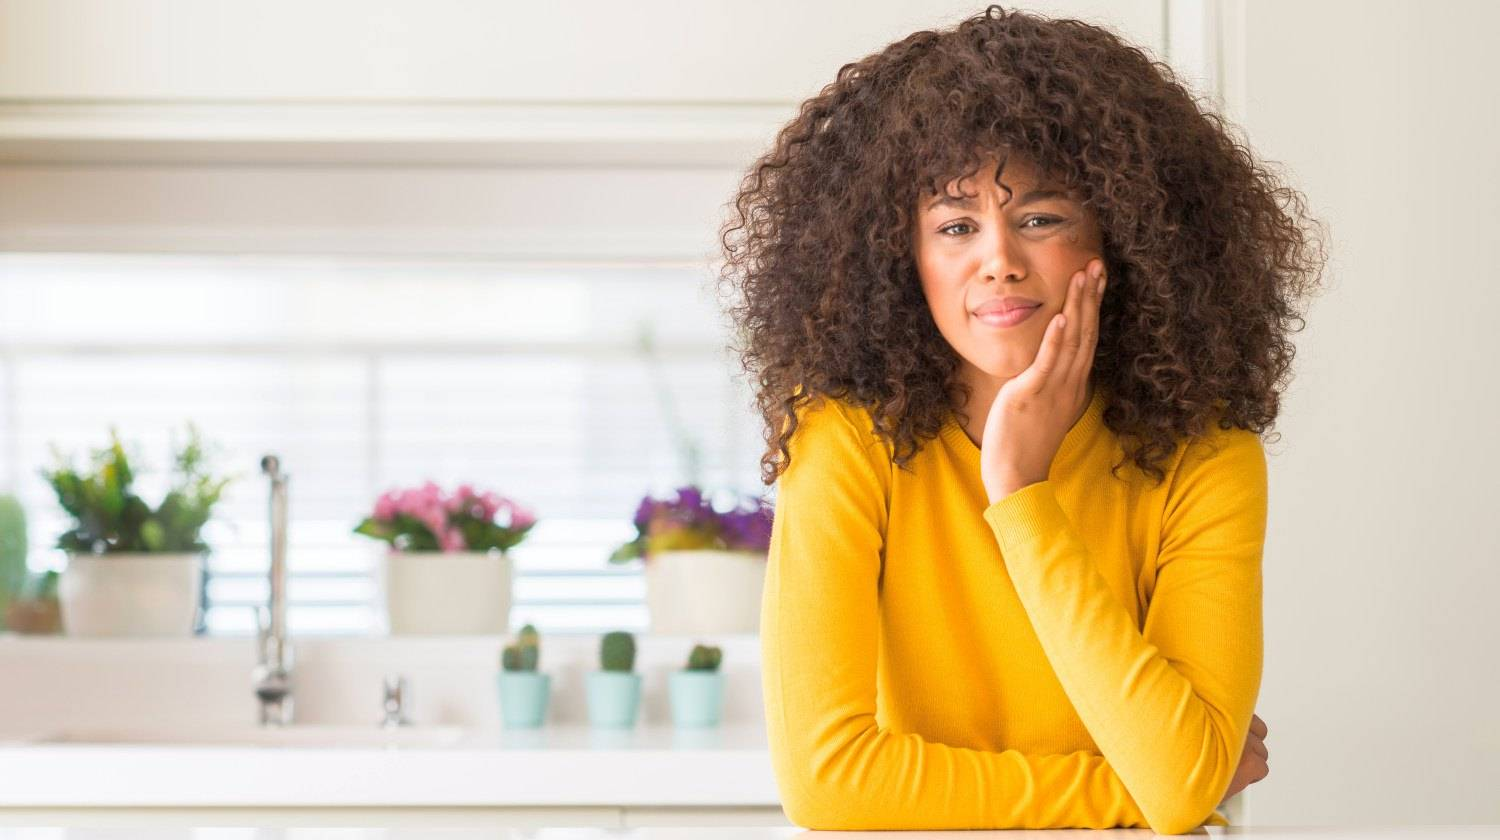 Featured | African american woman wearing yellow sweater at kitchen touching mouth with hand with painful expression | Coconut Oil for Canker Sores - How Does It Work?